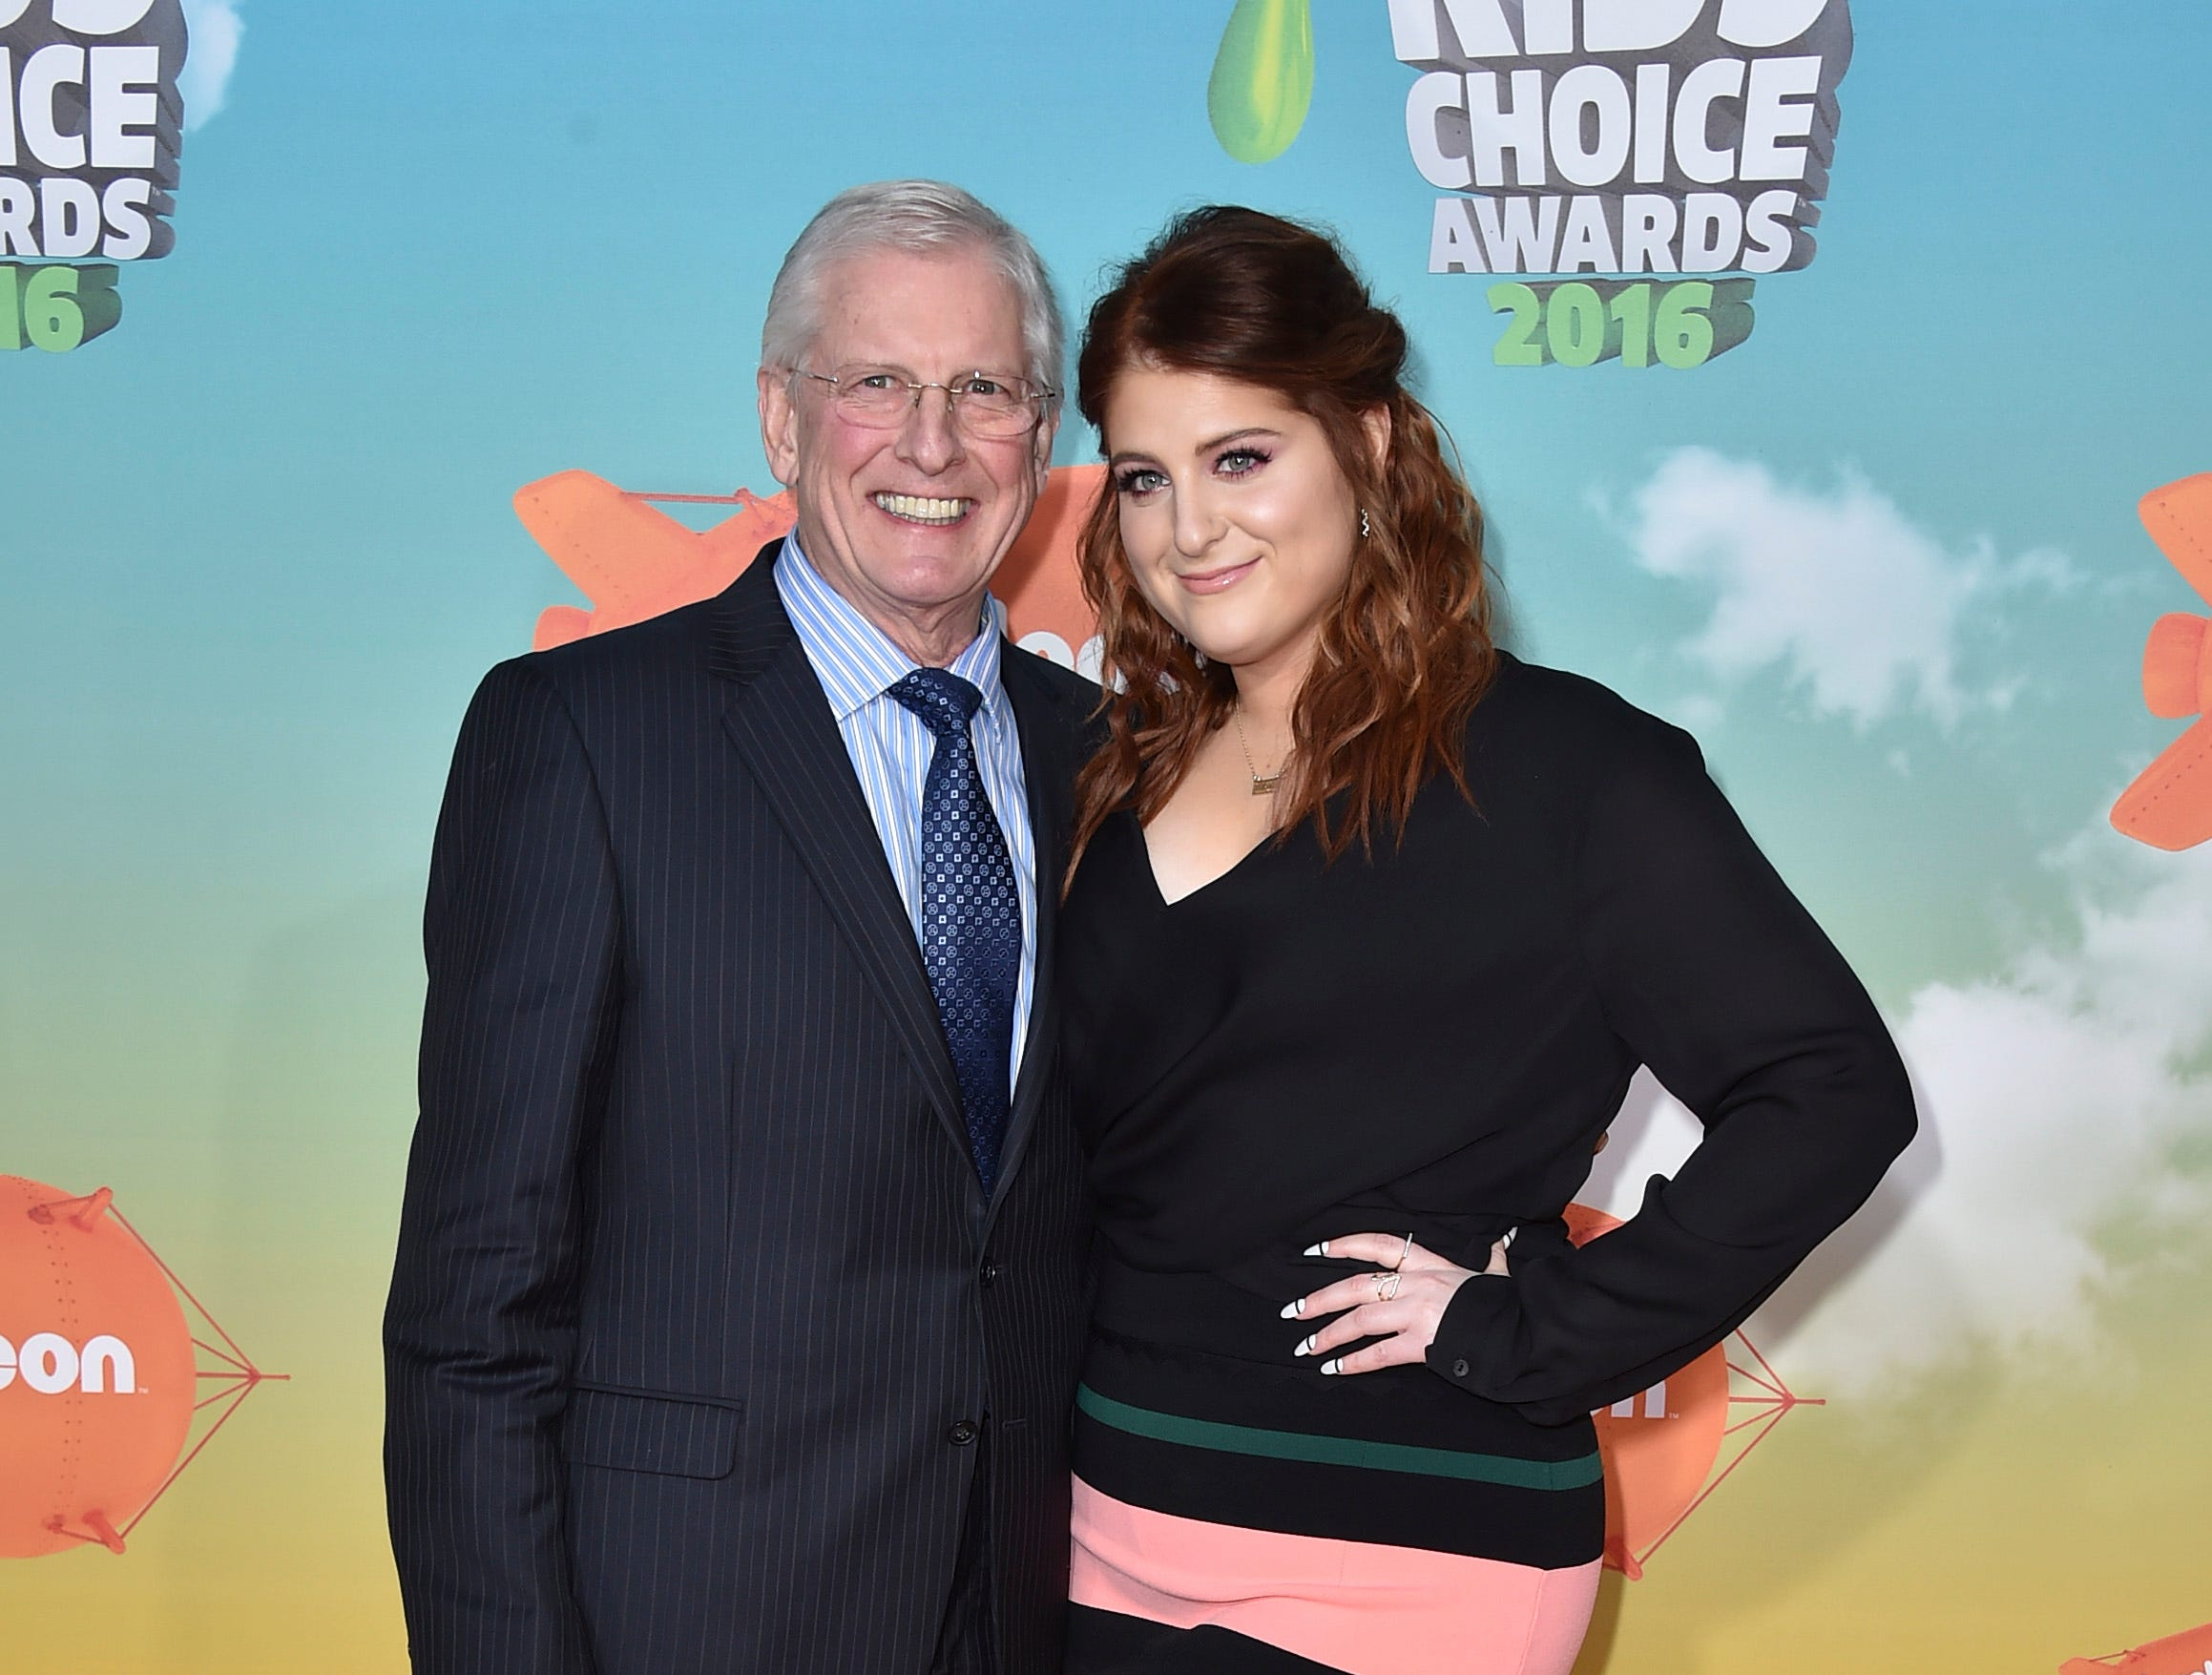 Gary Trainor with his daughter, singer Meghan Trainor, in 2016